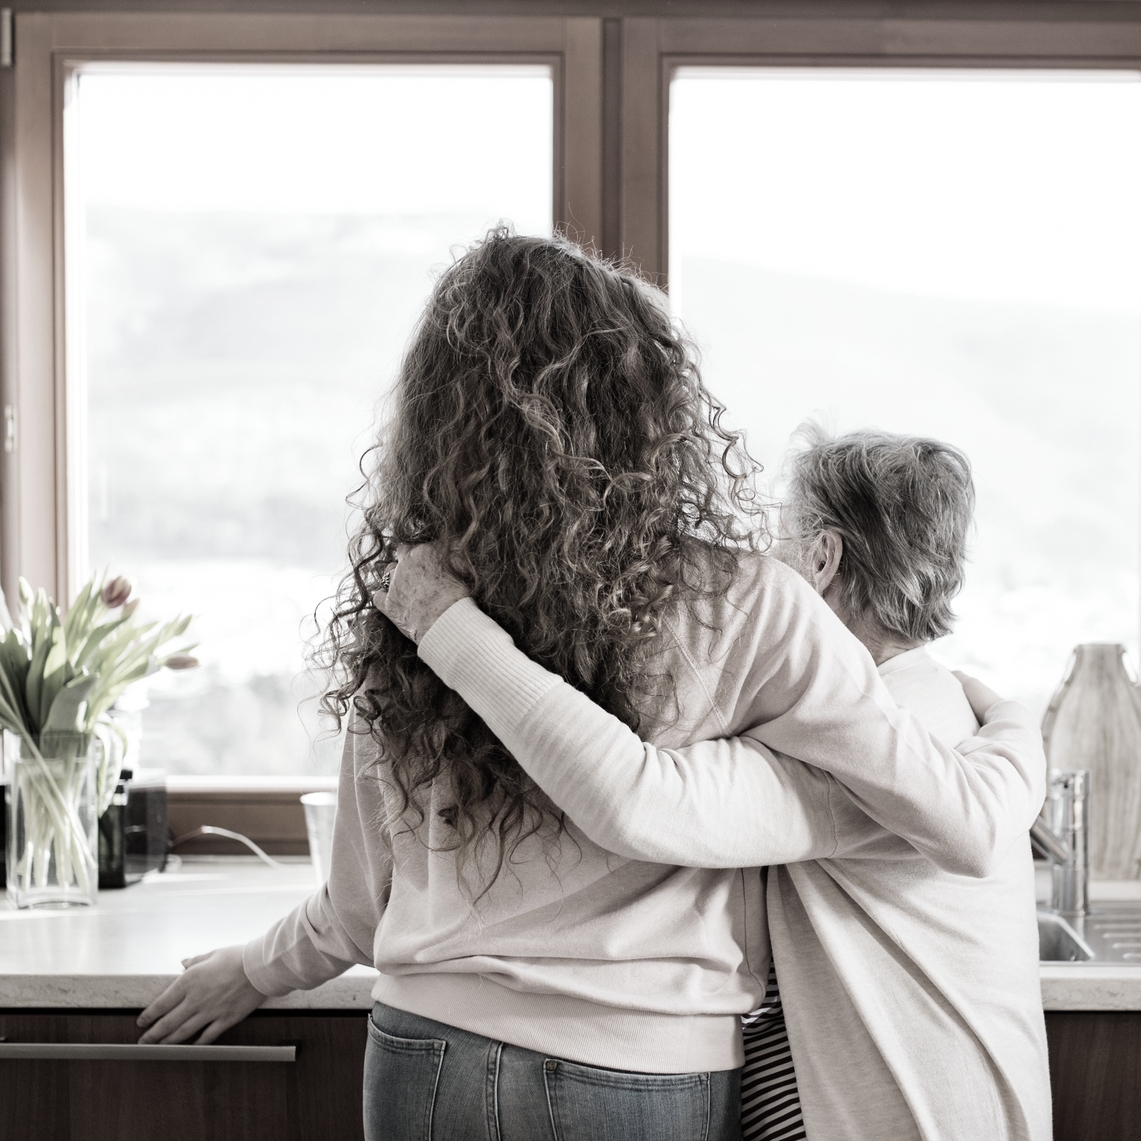 GRIEVING  - Grief Support for Kids & Teens